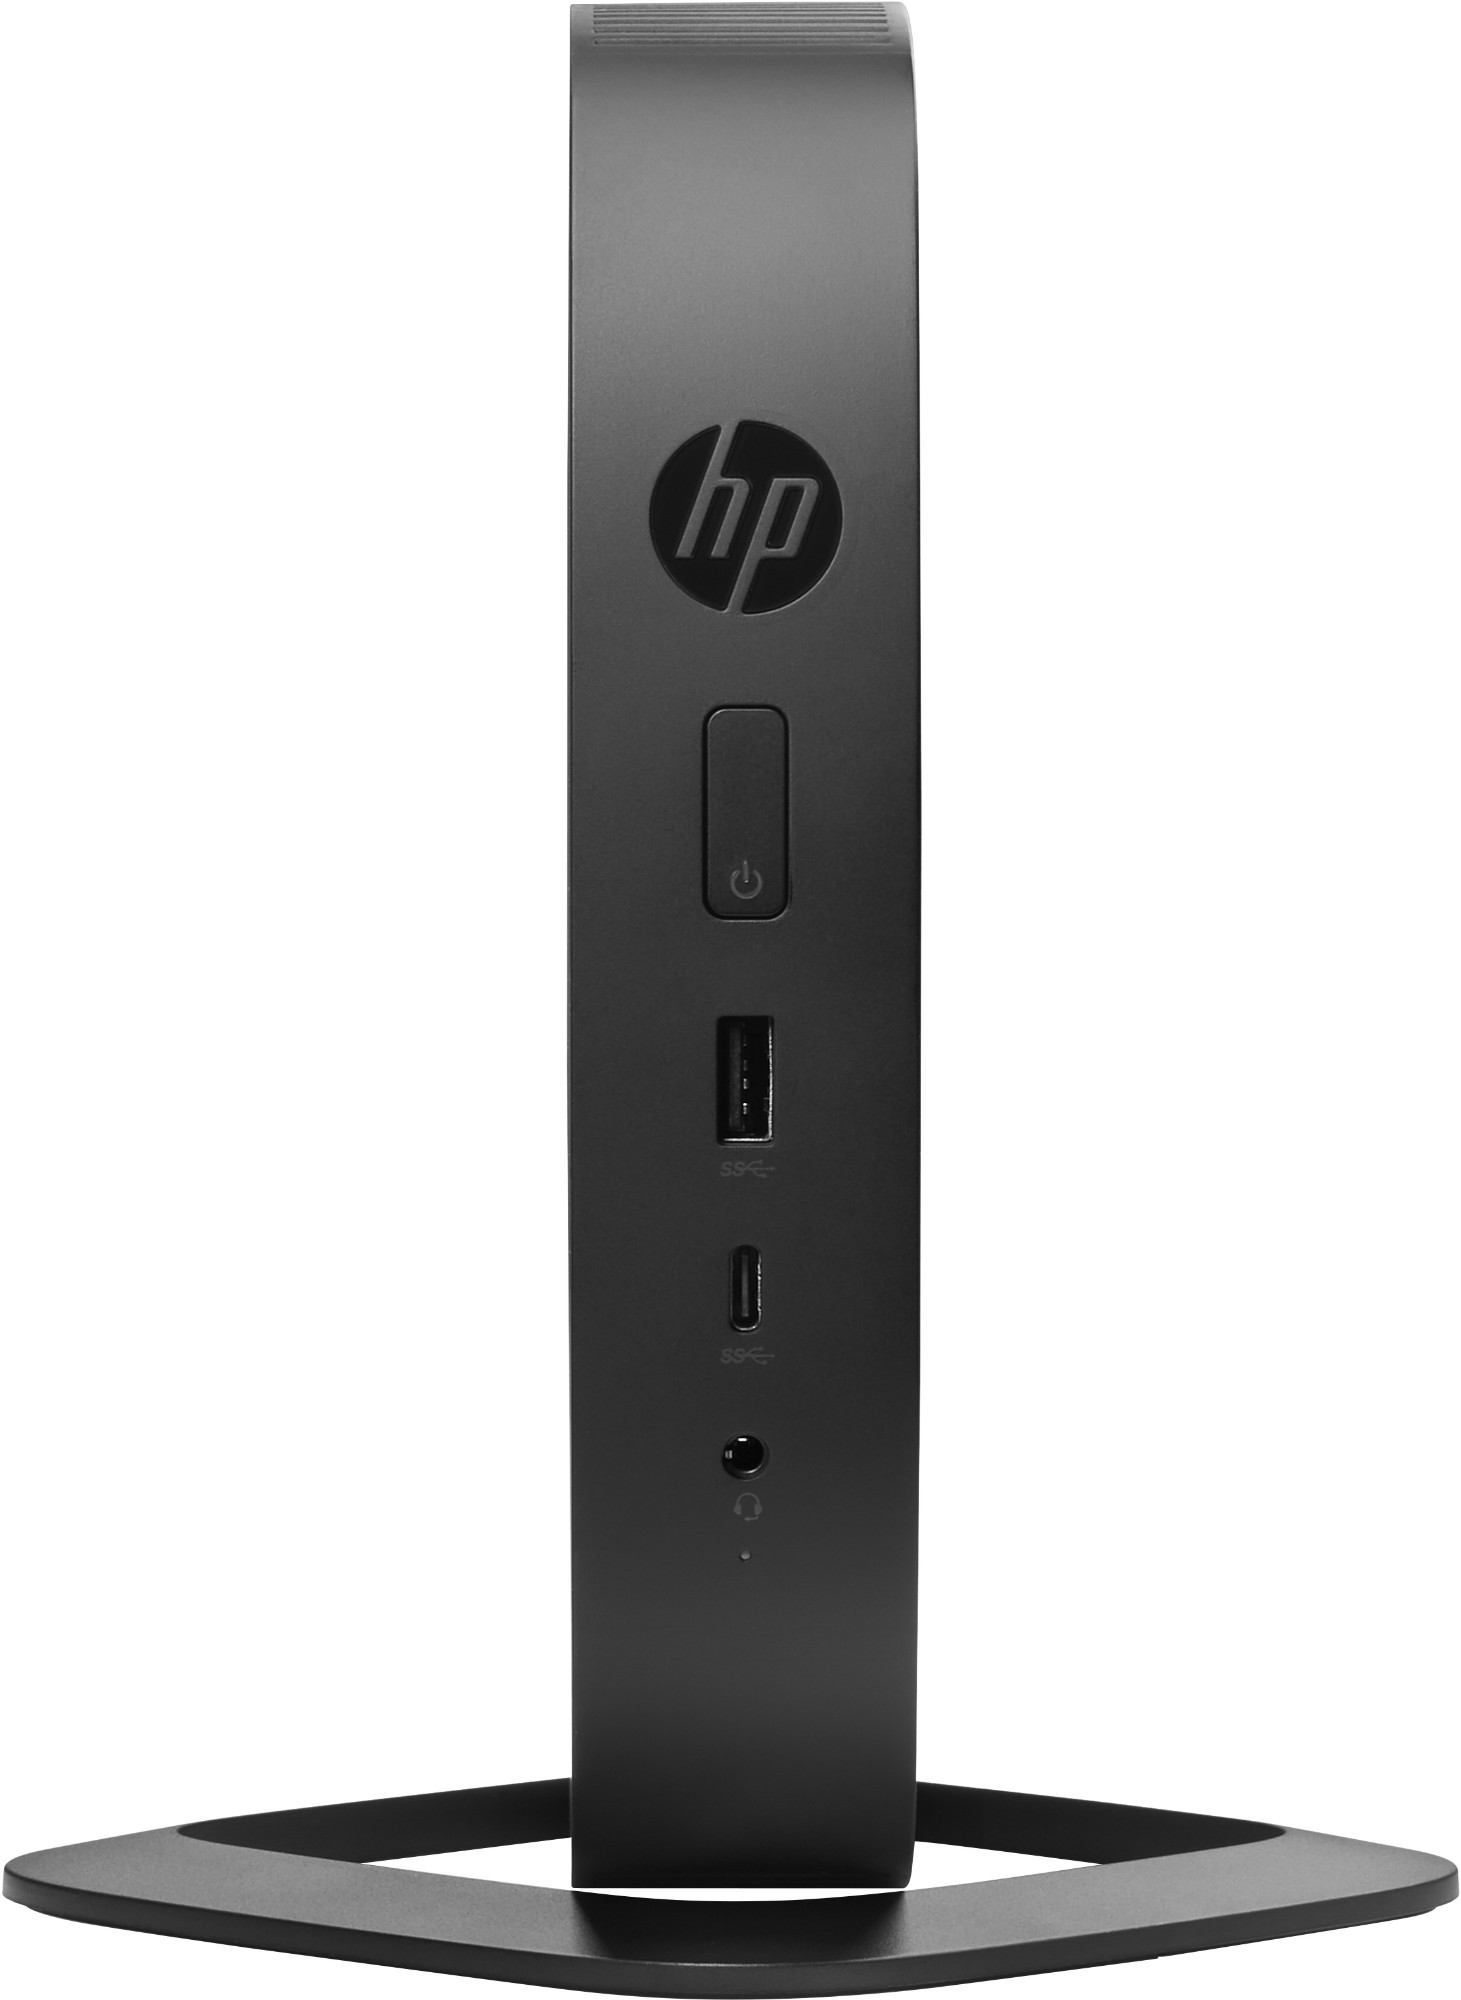 HP t530 1,5 GHz GX-215JJ Negro Windows 10 IoT Enterprise 960 g